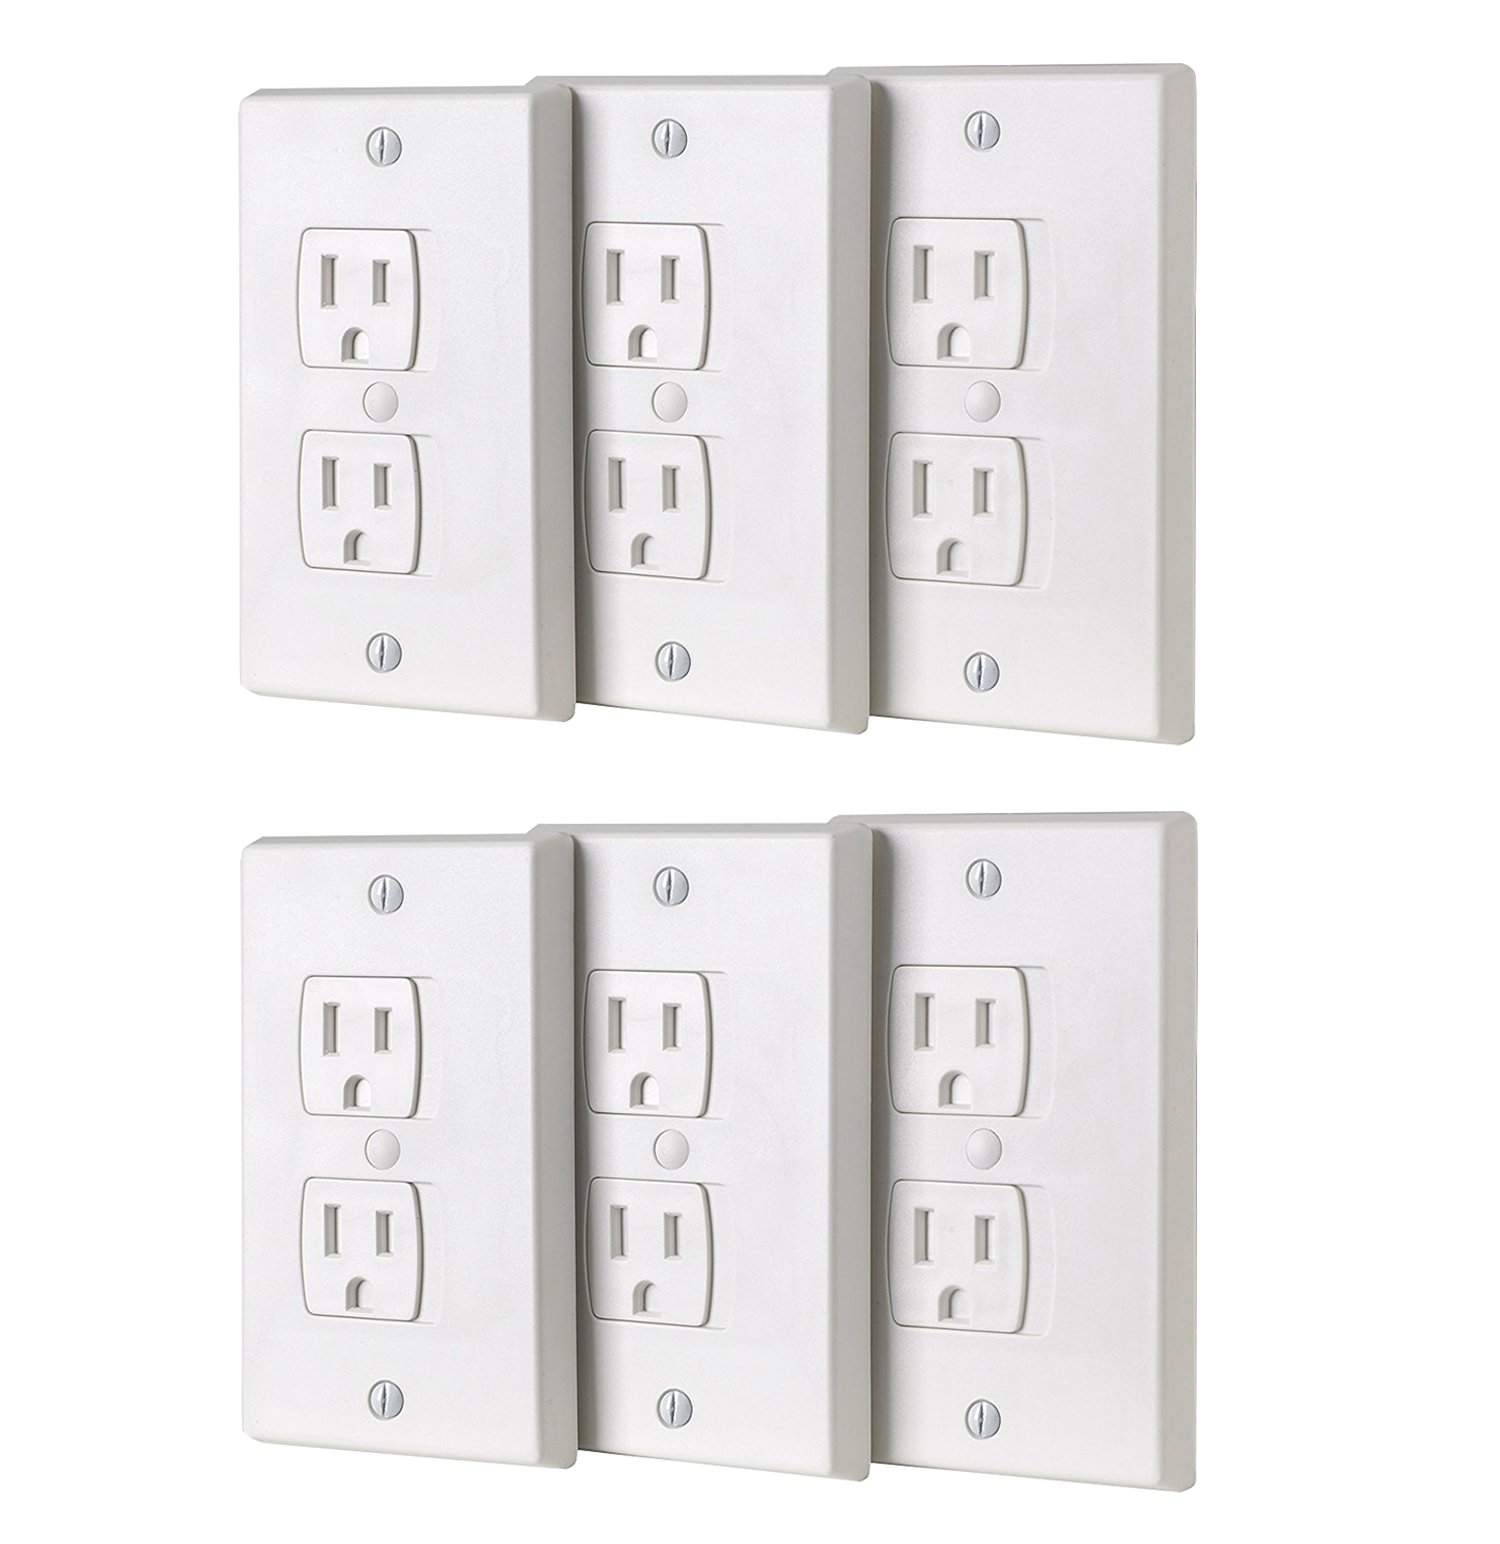 BUENAVO Universal Electrical Outlet Covers, Baby Safety Self-Closing Wall Socket Plugs Plate Alternate for Child Proofing, BPA Free (6 Pack)